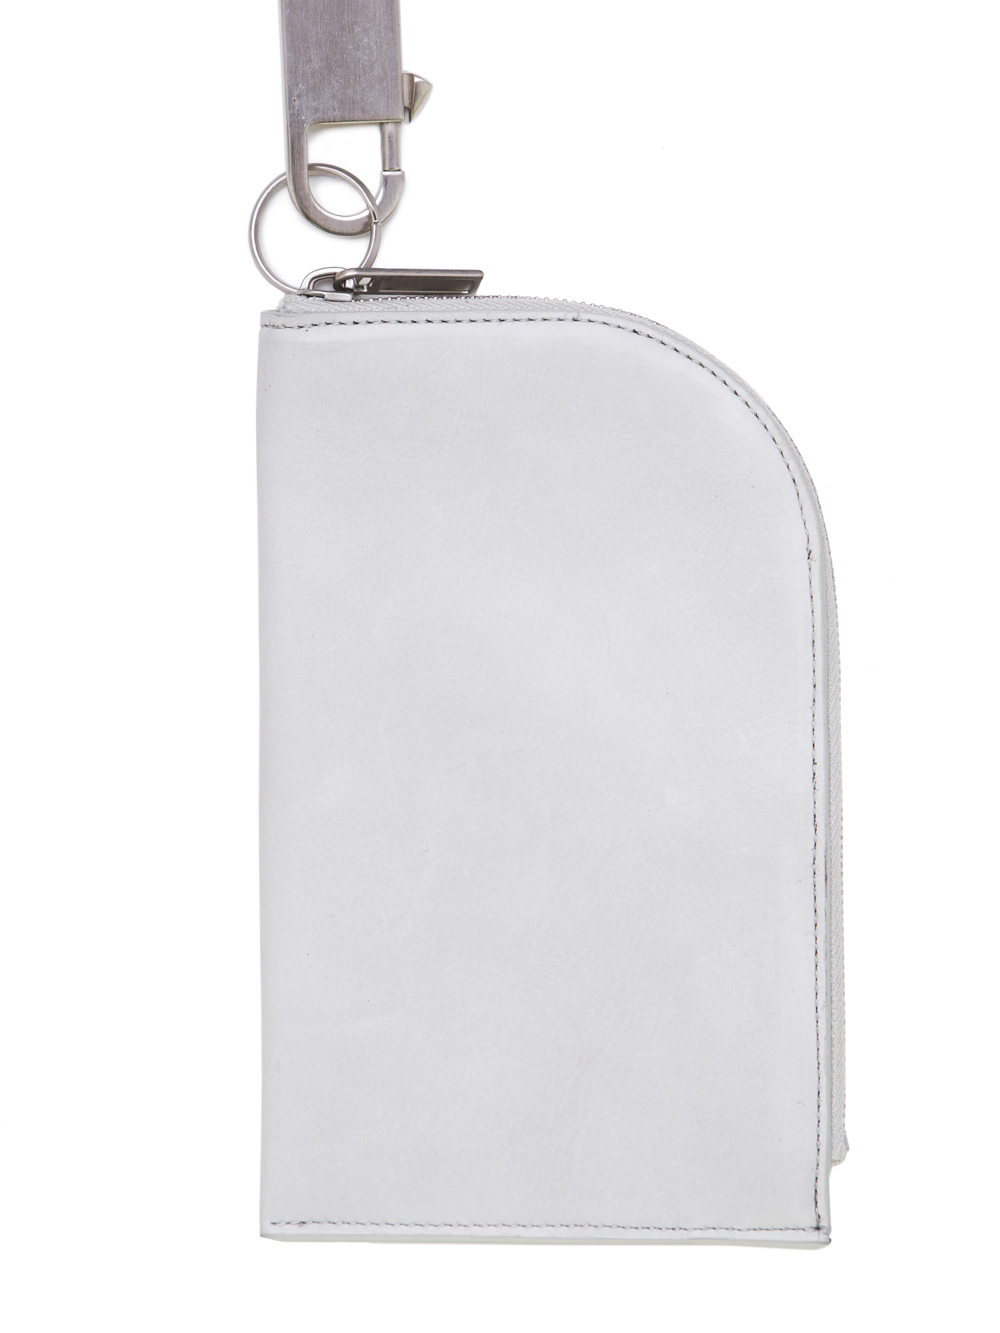 RICK OWENS SS19 BABEL CHAIN NECKWALLET IN OYSTER LIGHT GREY BABY CALF LEATHER